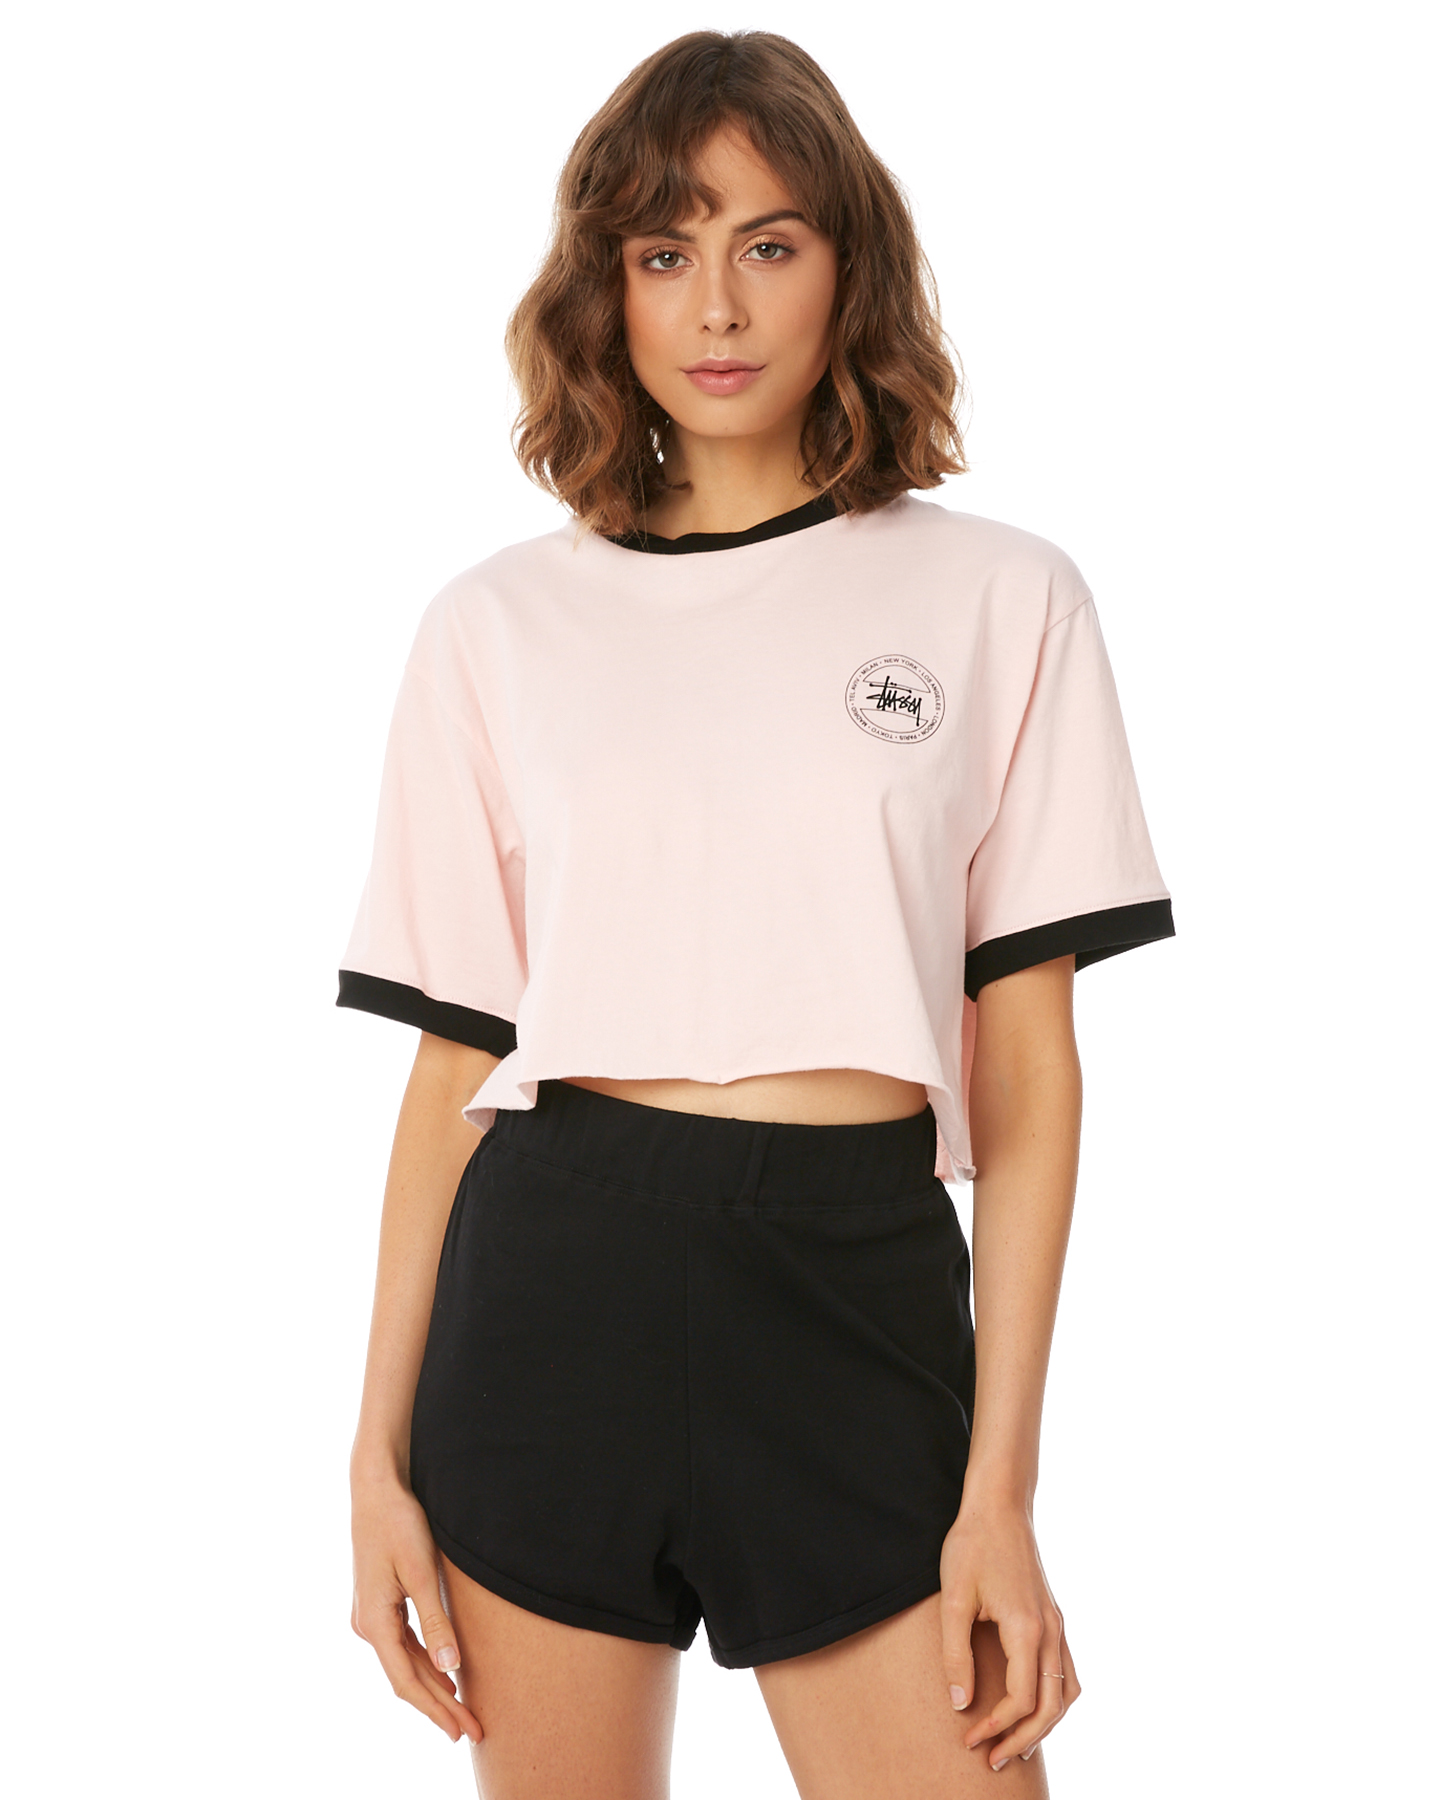 Stussy Women s Laguna Crop Ringer Tee Cotton Soft Pink 9347385917426 ... c95874994